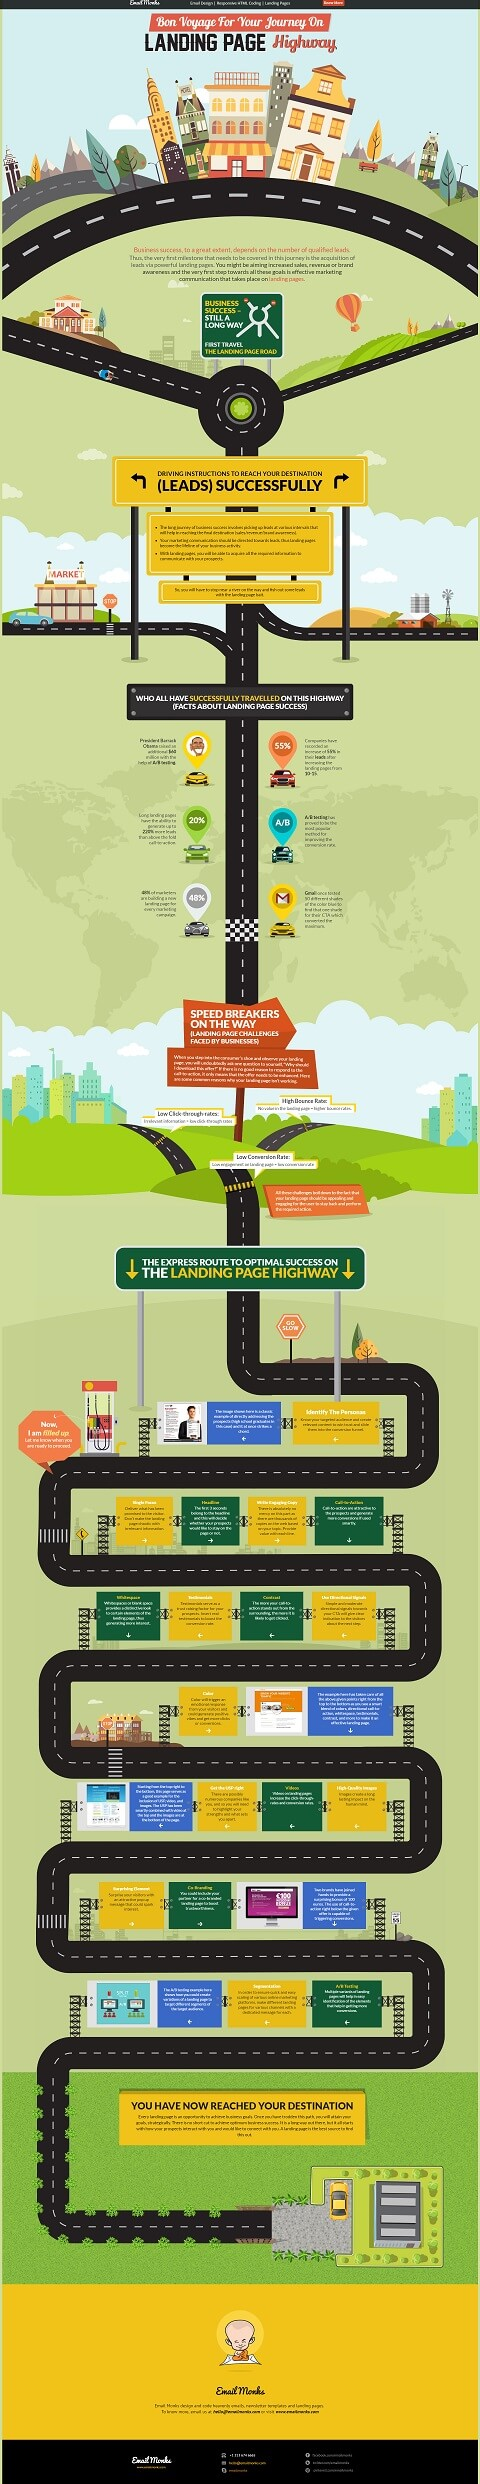 Landing Page Best Practices Infographic